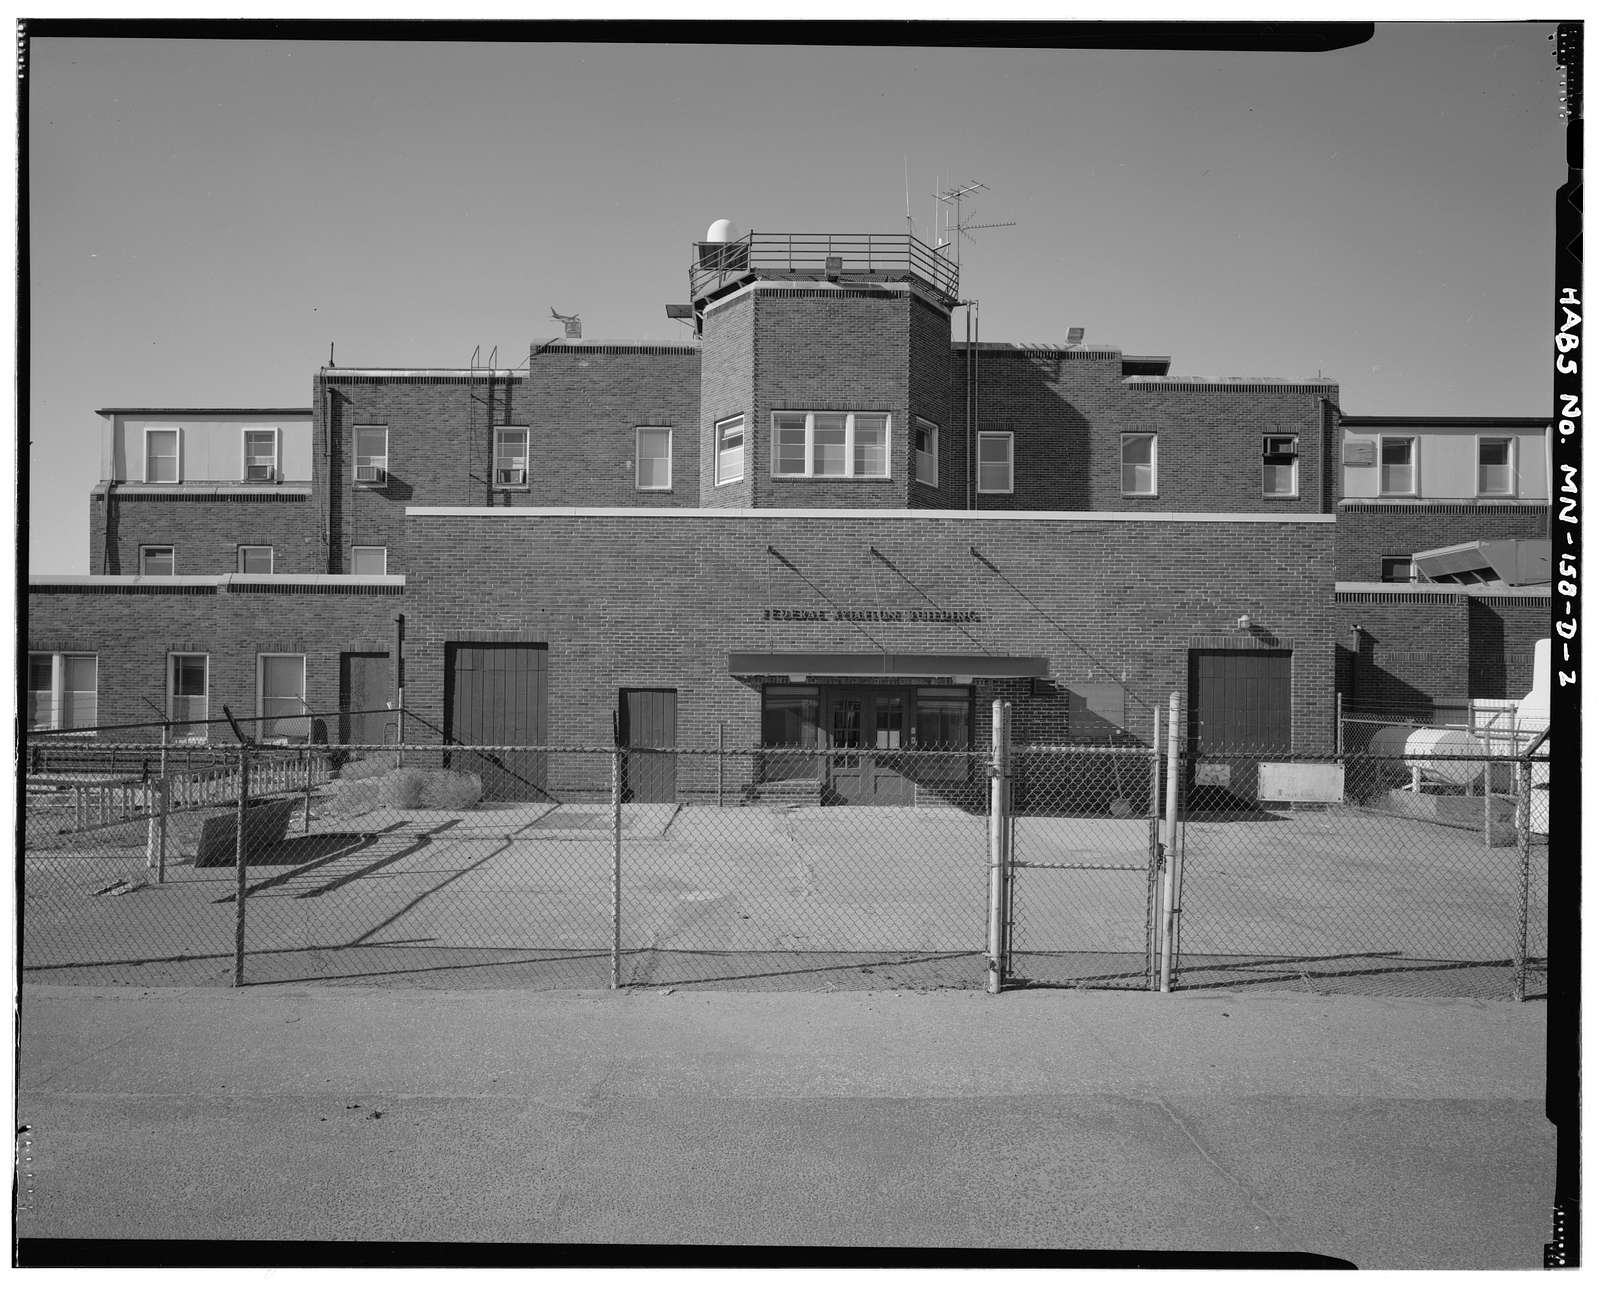 Wold-Chamberlain Field, Administration Building, 6301 Thirty-fourth Avenue, South, Minneapolis, Hennepin County, MN